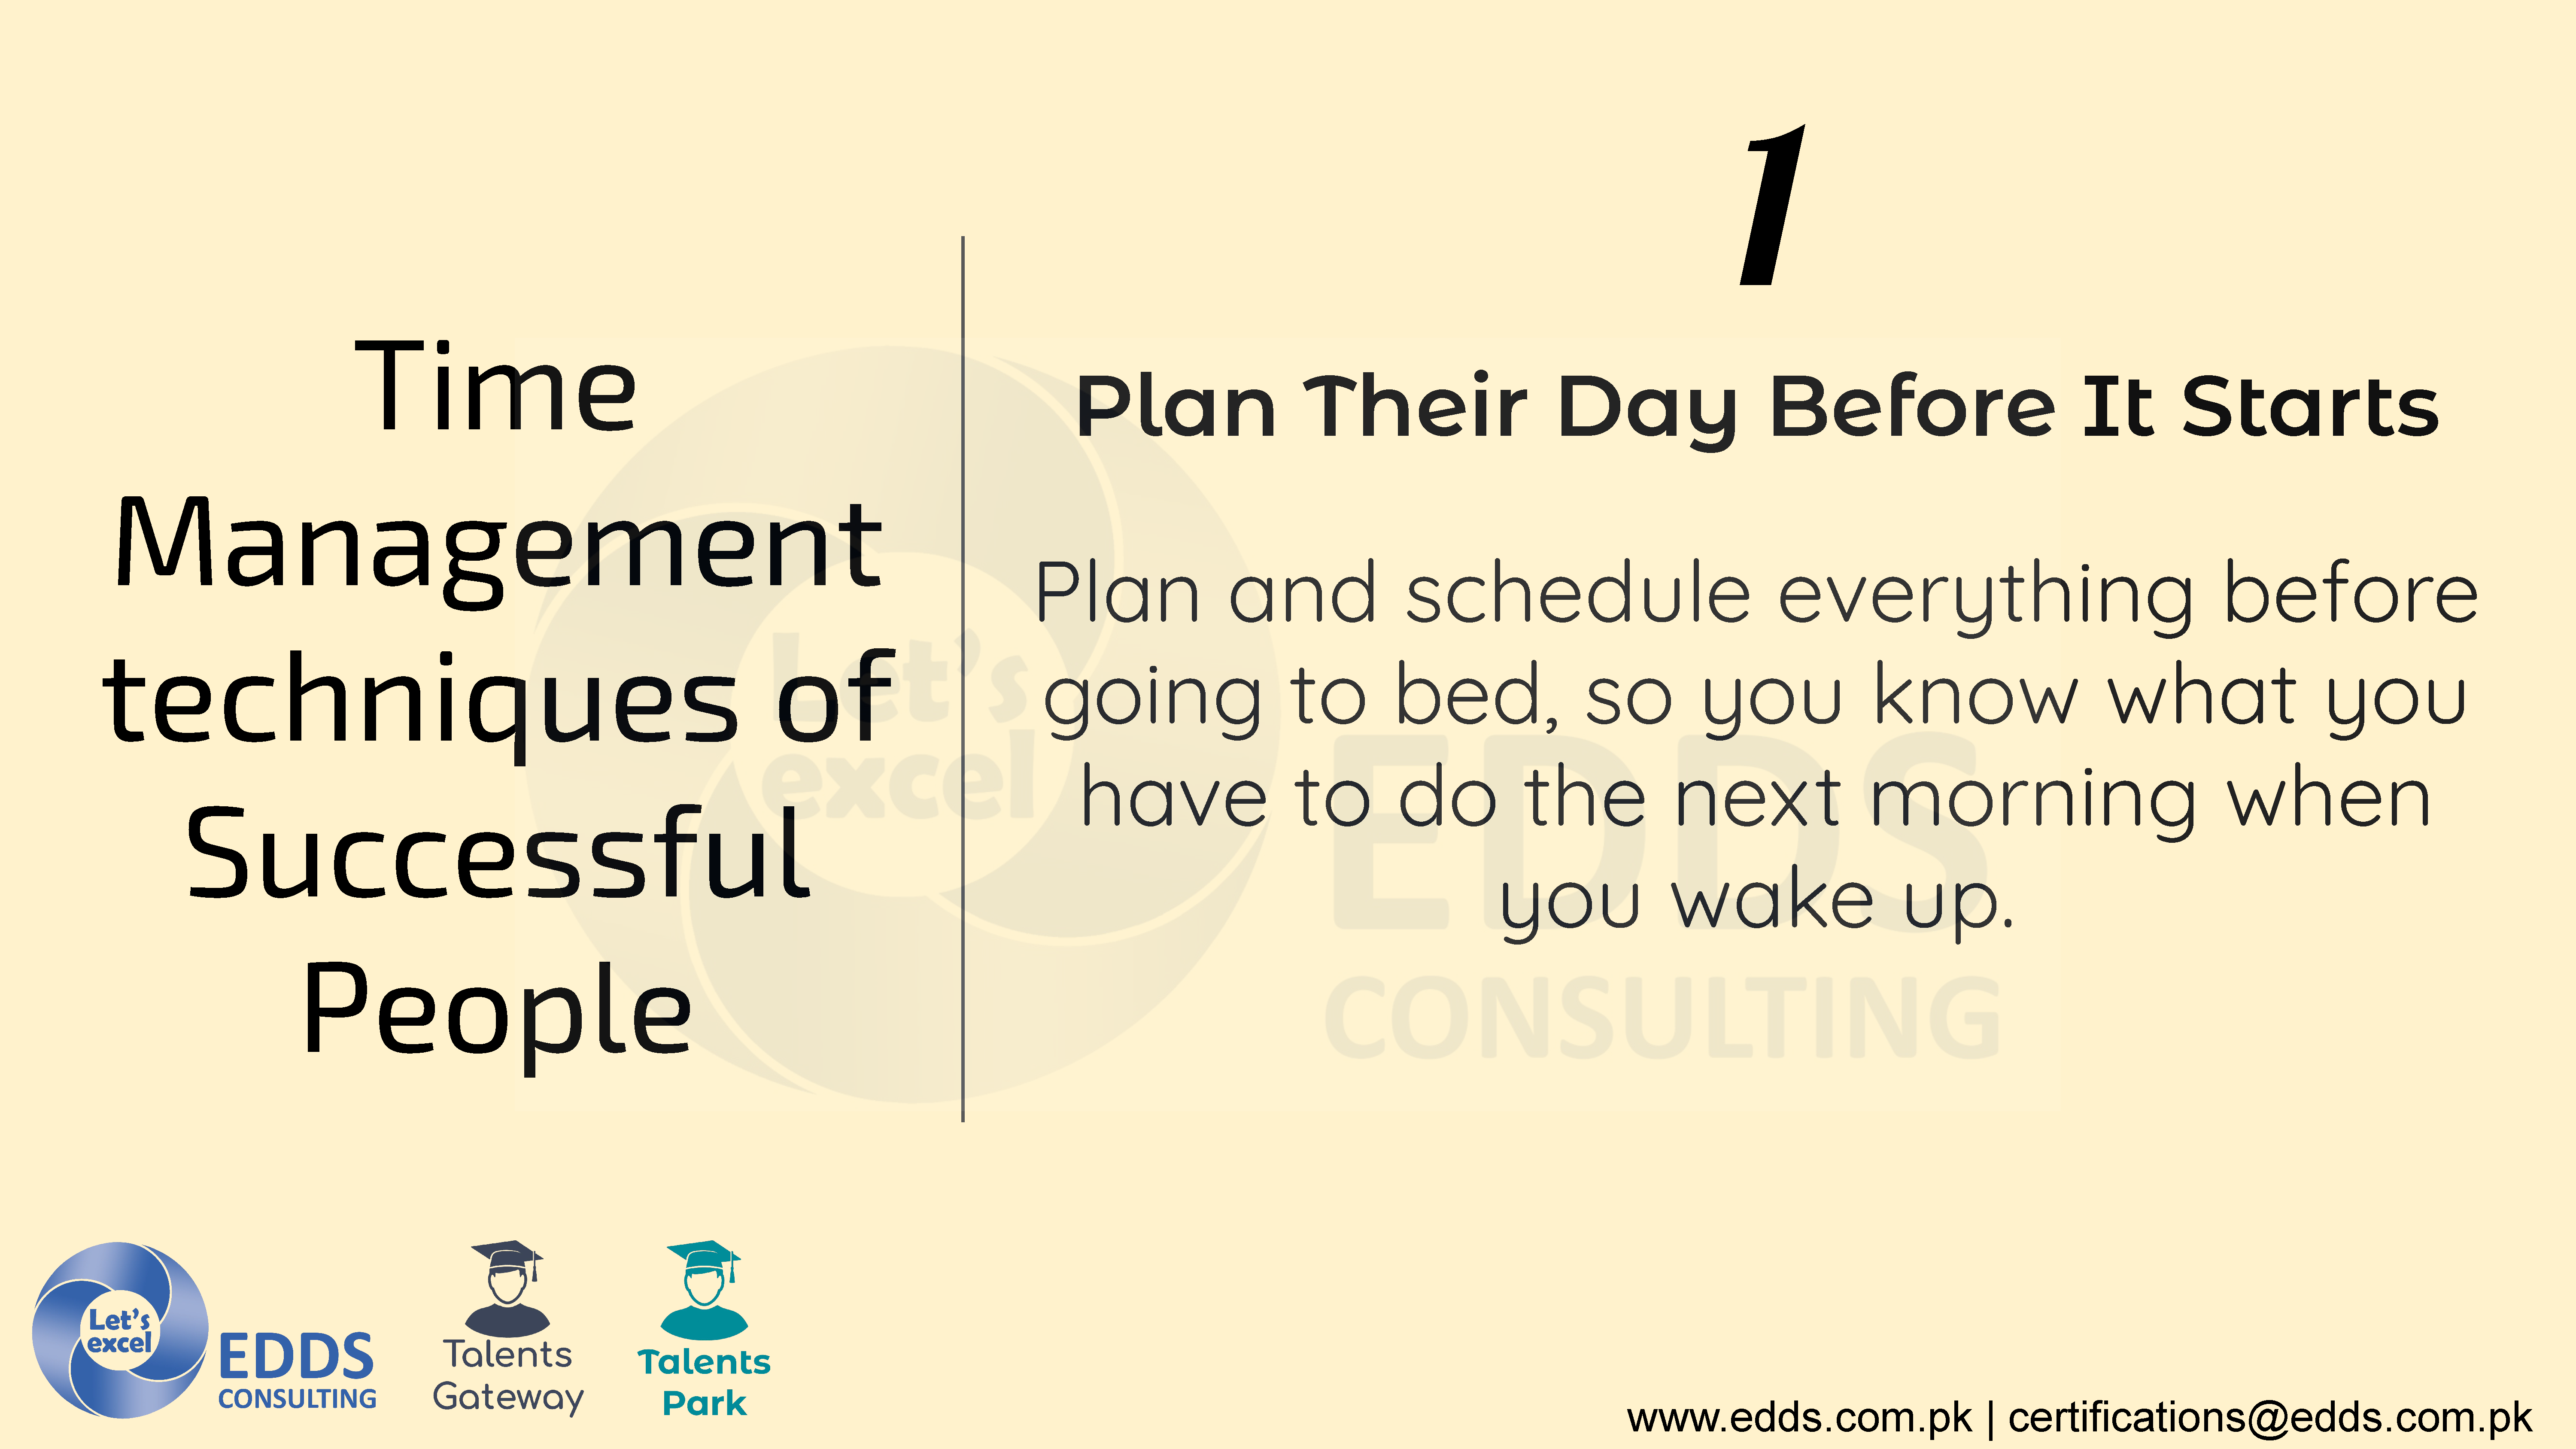 Time Management skills of Successful People